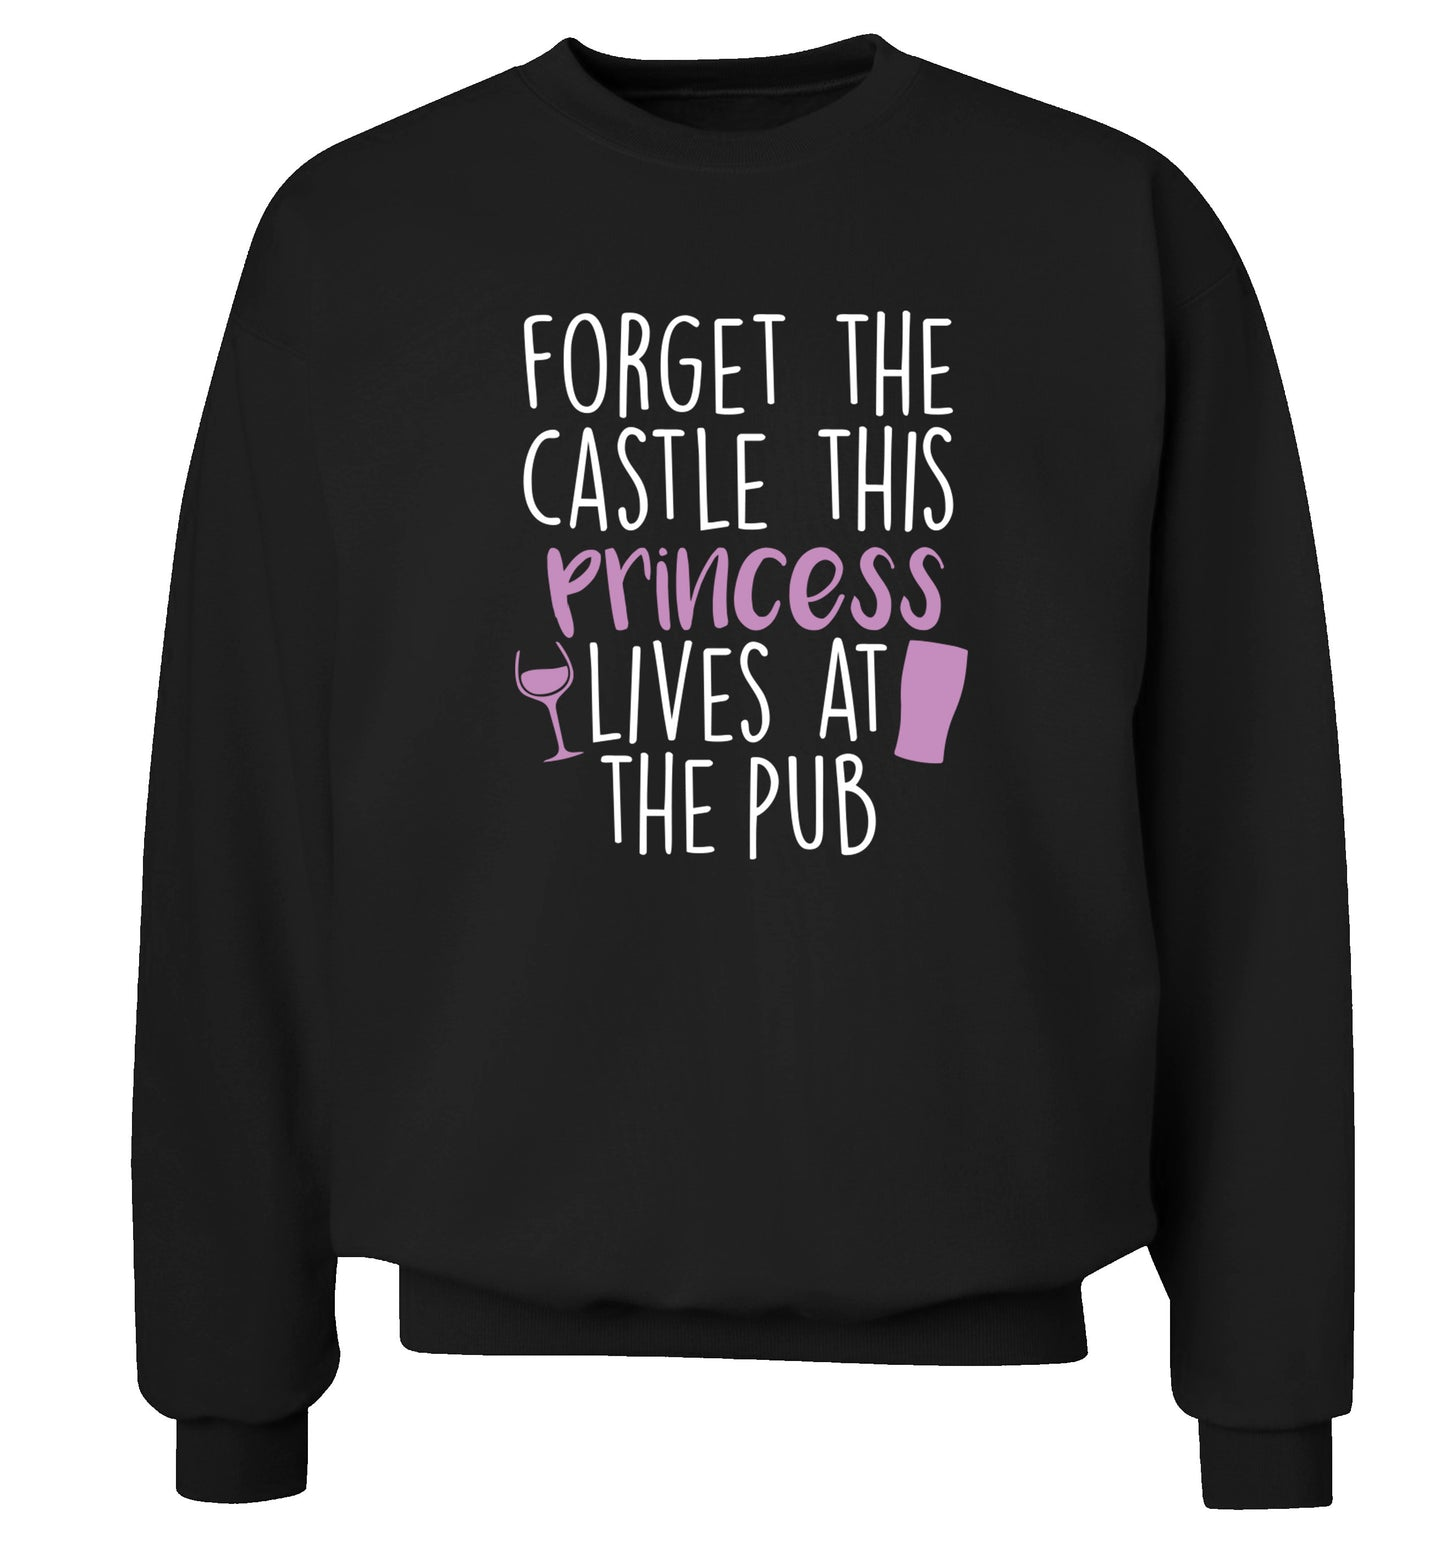 Forget the castle this princess lives at the pub Adult's unisex black Sweater 2XL